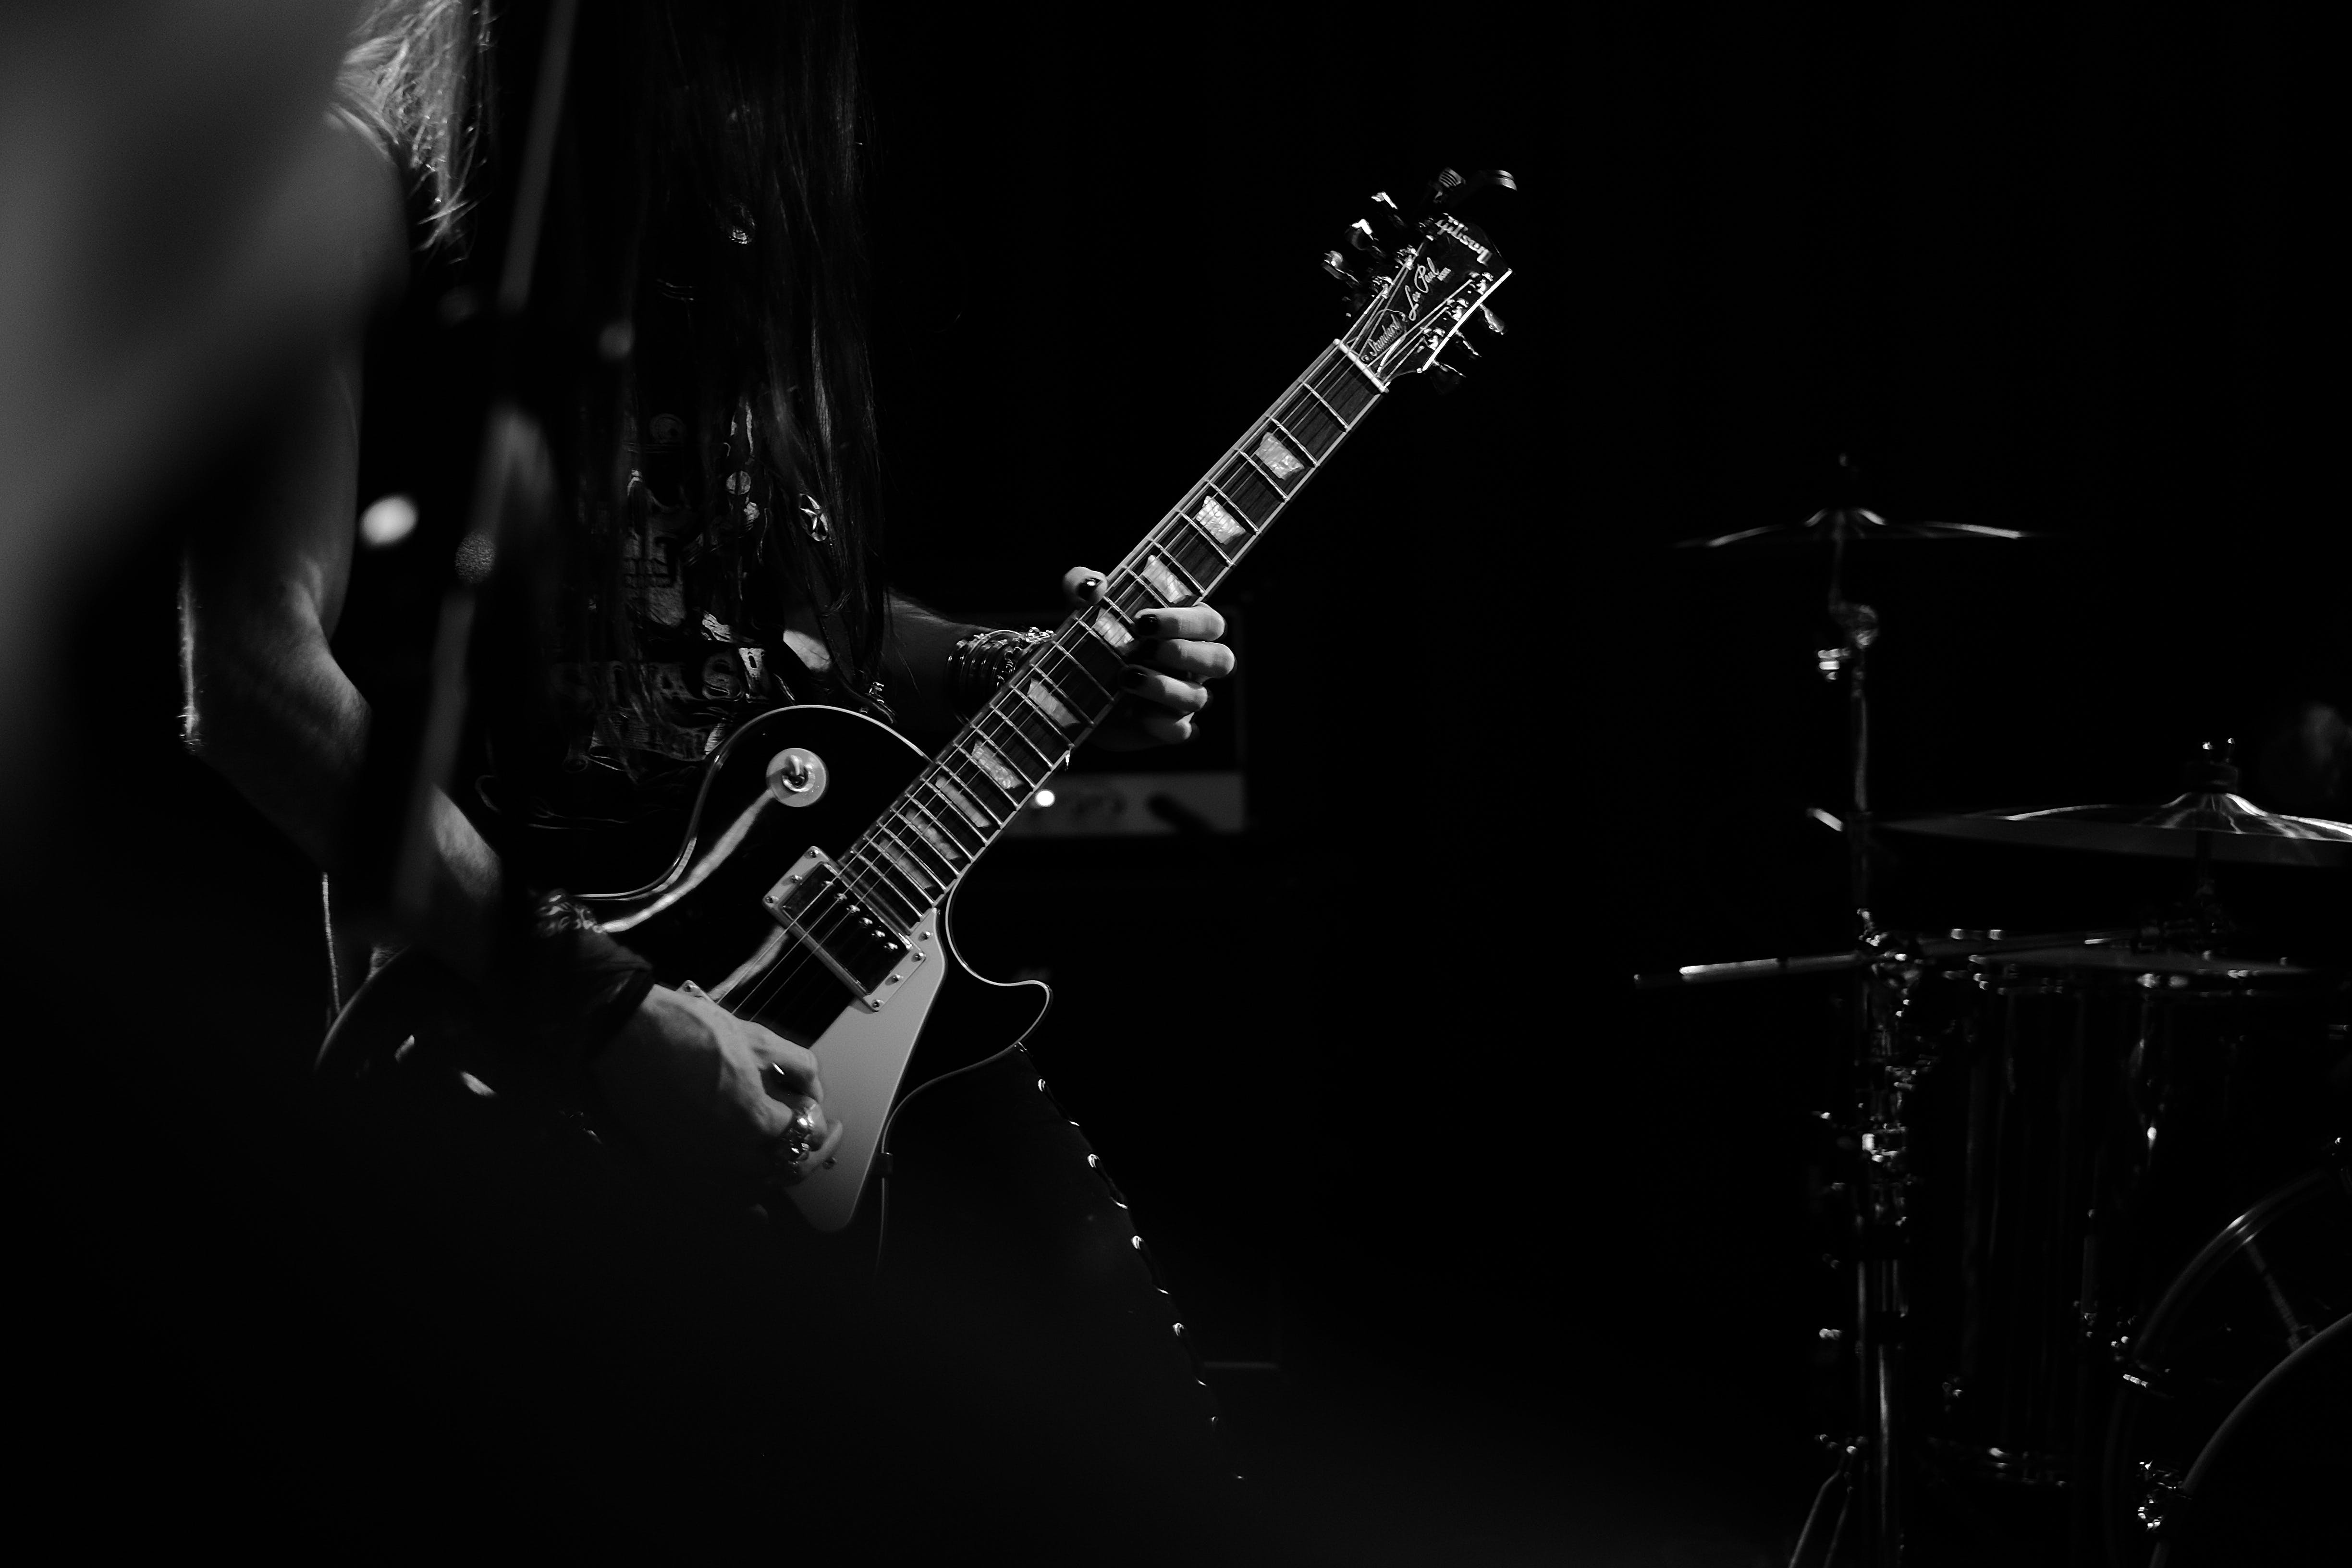 Man Playing Electric Guitar Grey Scale Photography